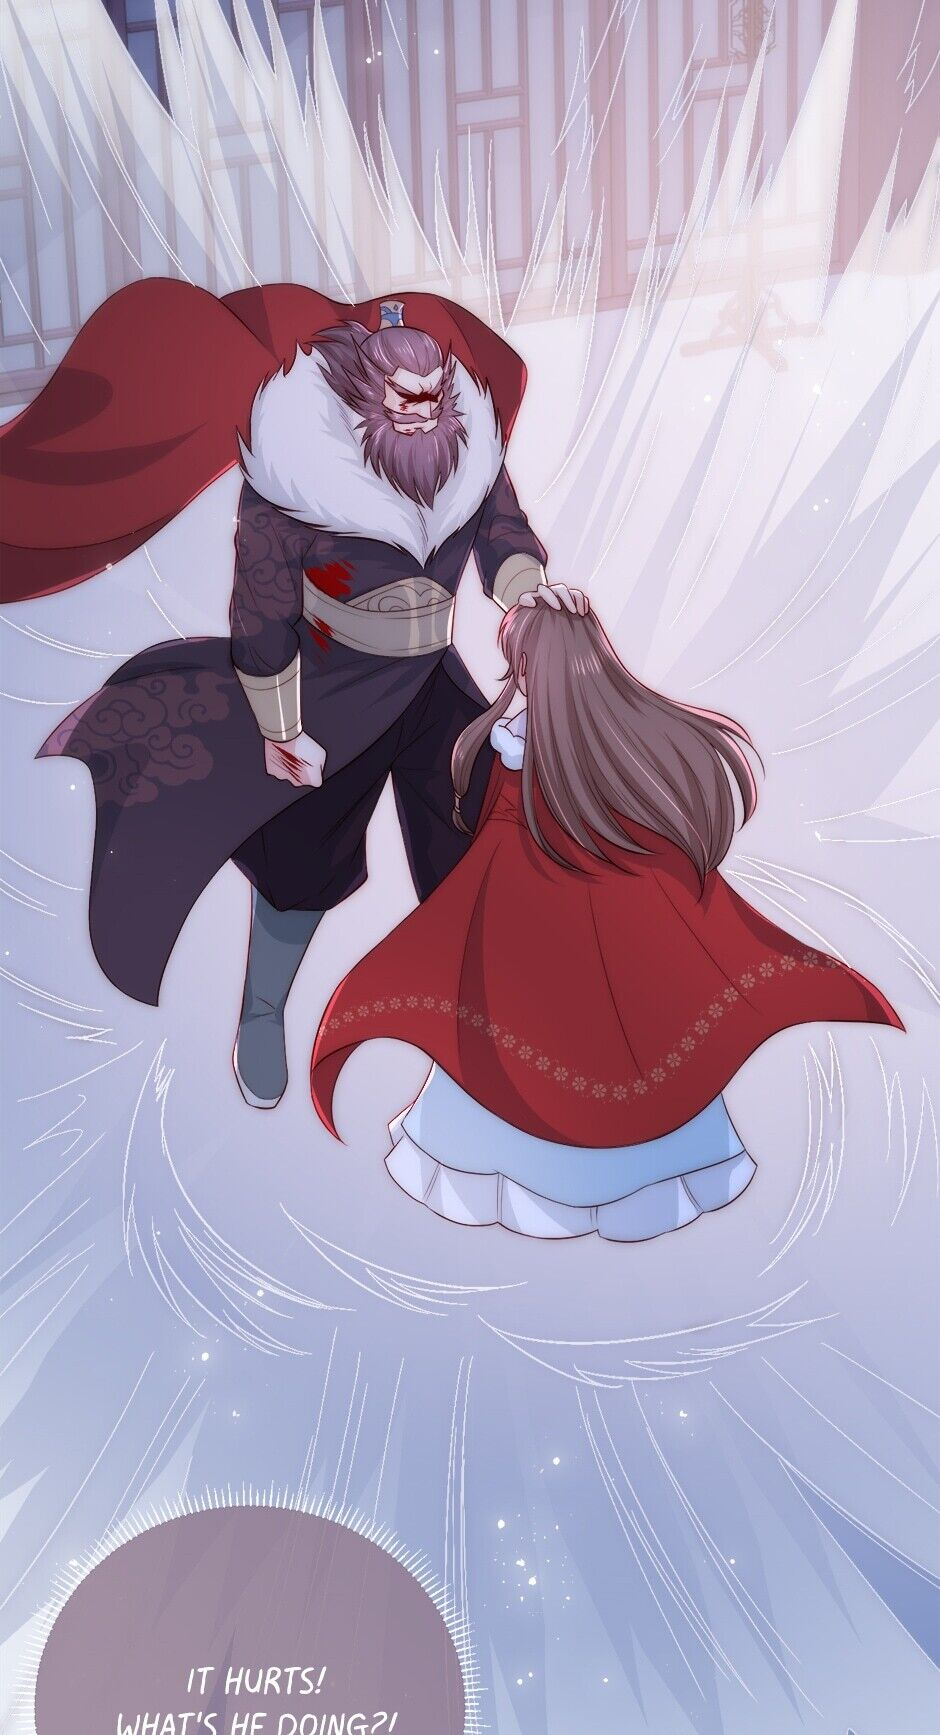 Raising the Enemy Only Brings Trouble - chapter 42 - #2